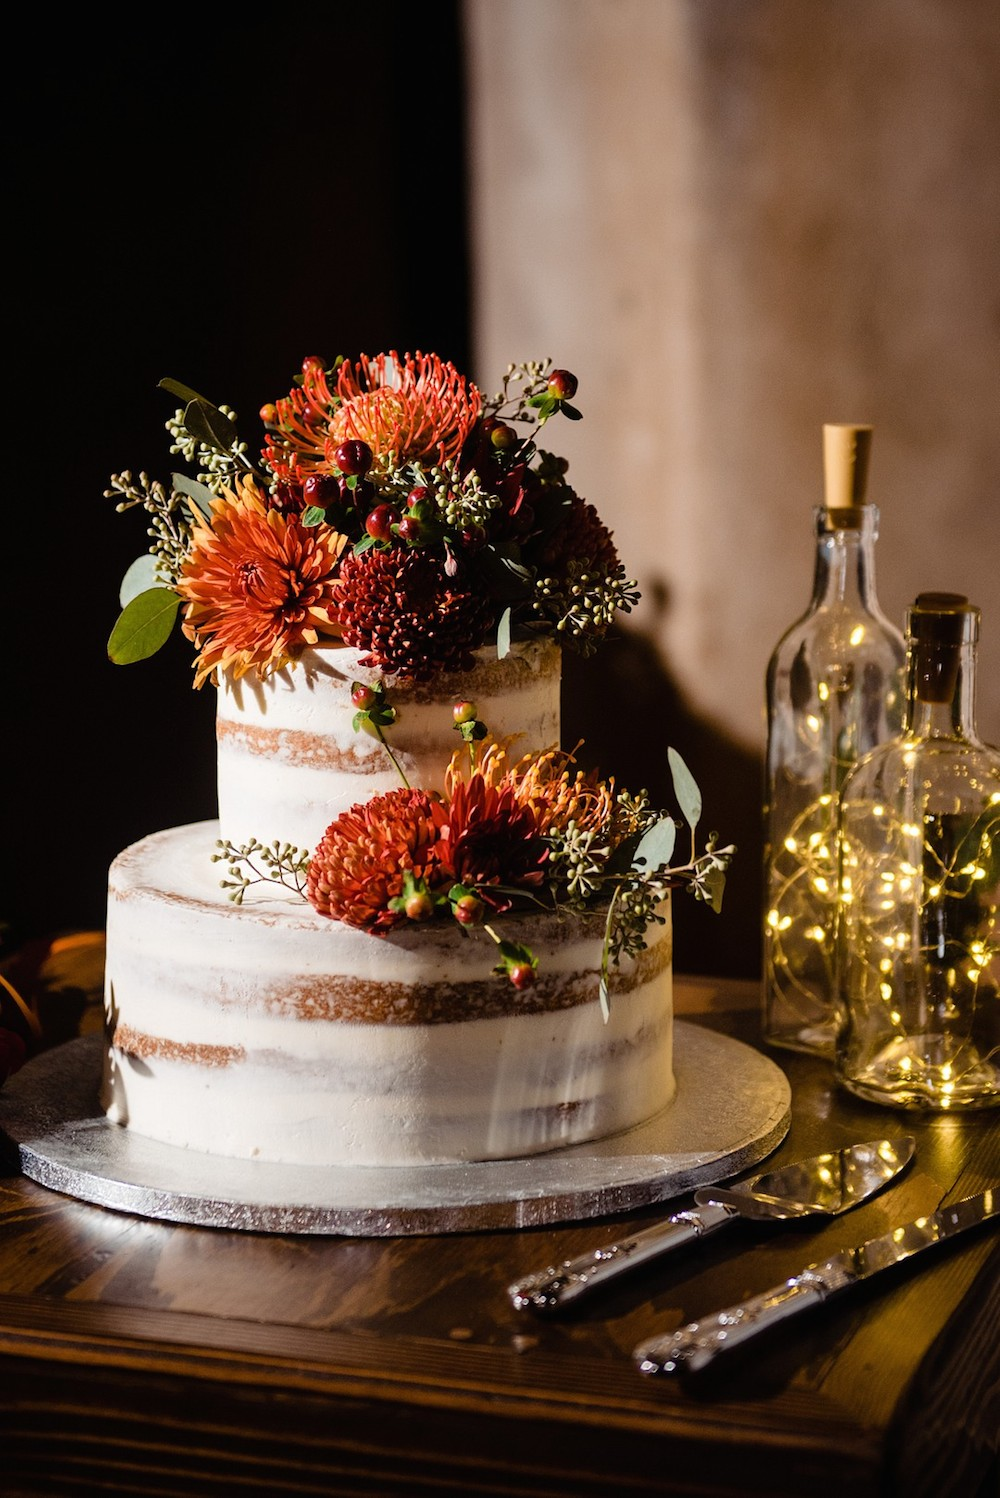 tiered wedding cake with fall colored flowers cascading down the side of it